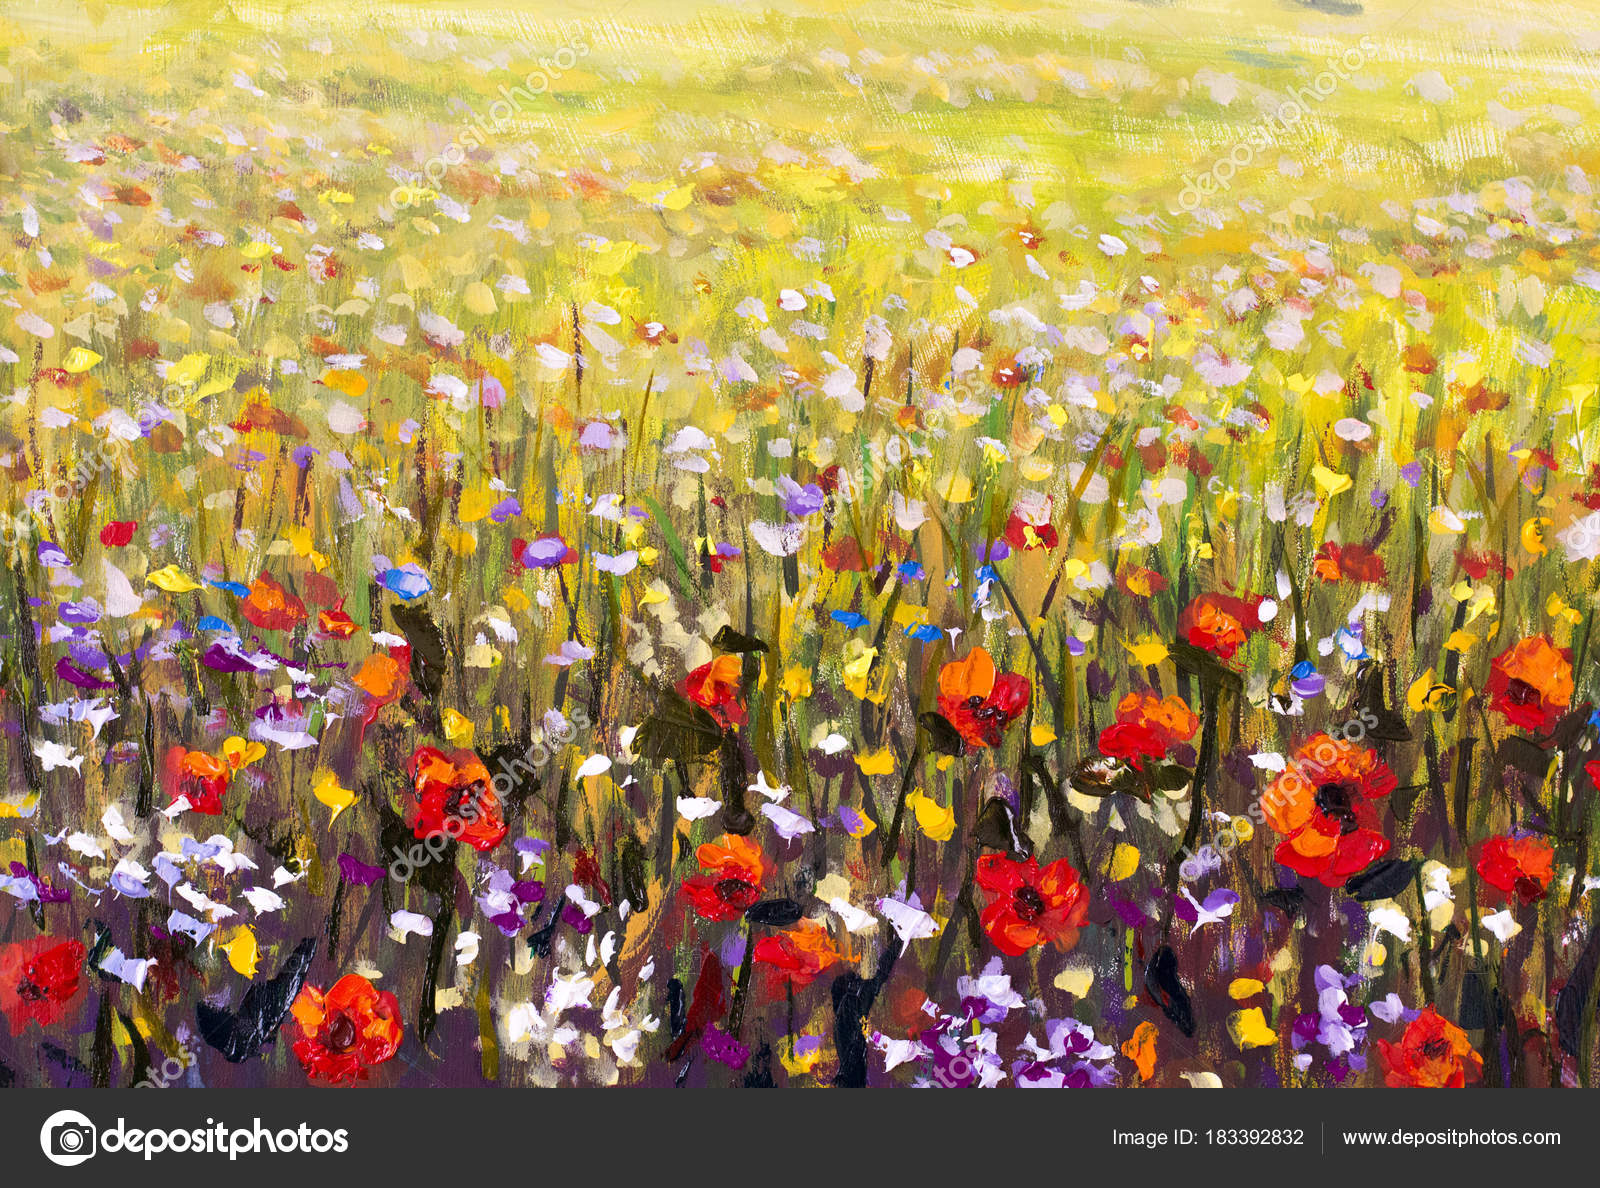 Red Poppies Flower Field Oil Painting Yellow Purple White Flowers